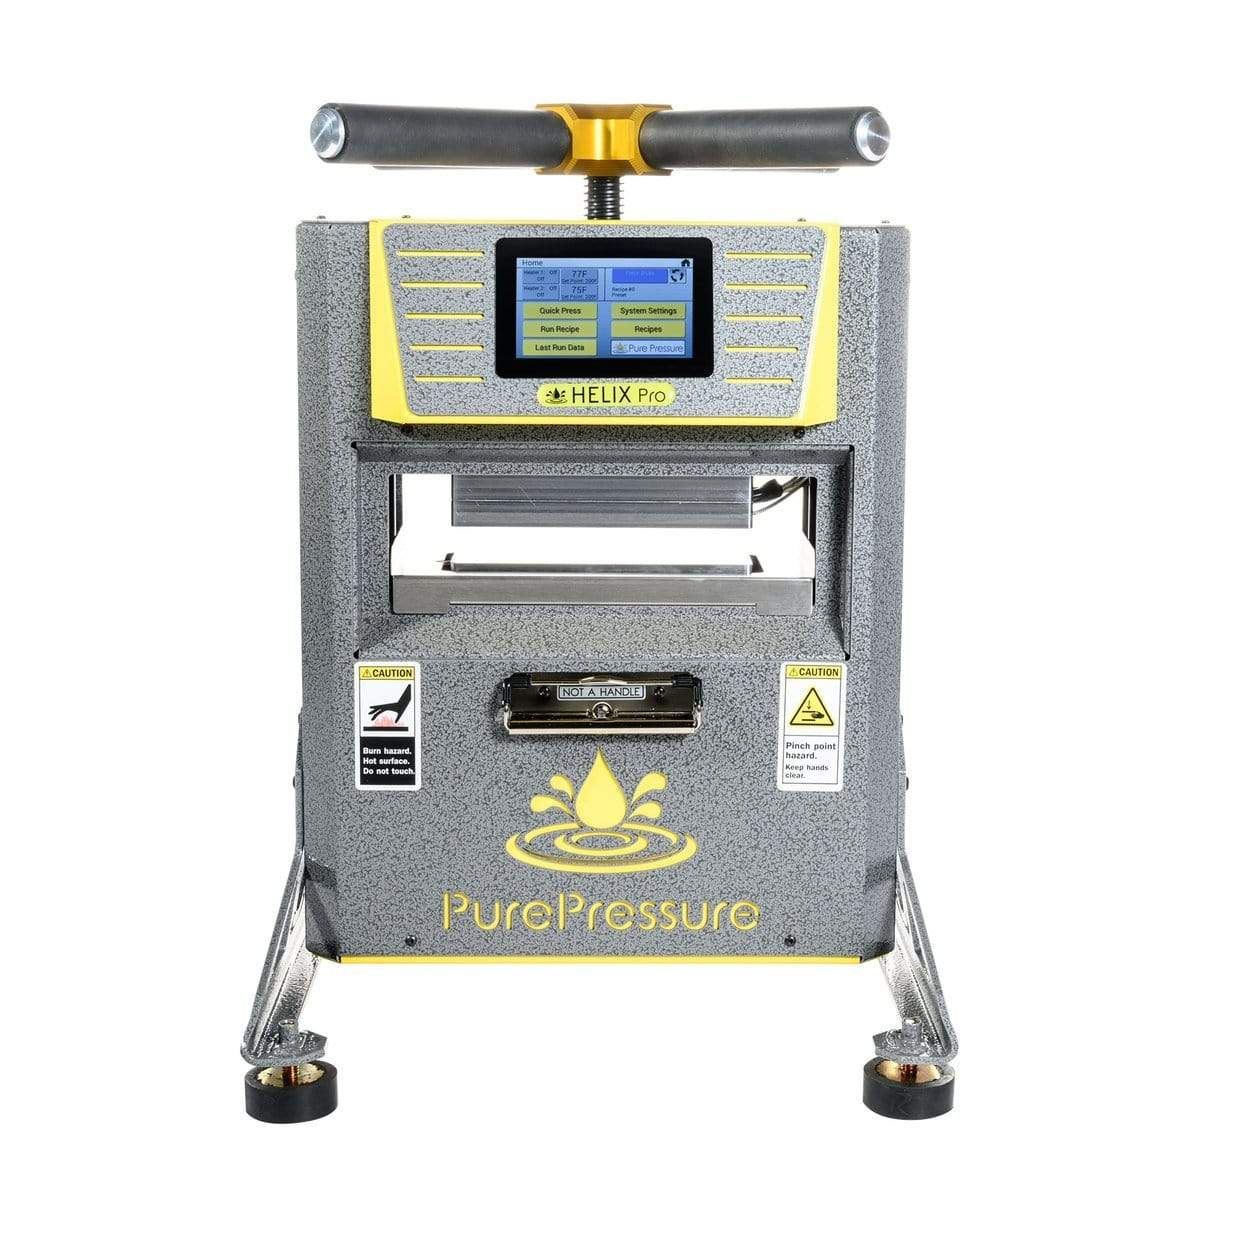 Pure Pressure Helix Pro 5 Ton Rosin Press - Trimleaf Canada